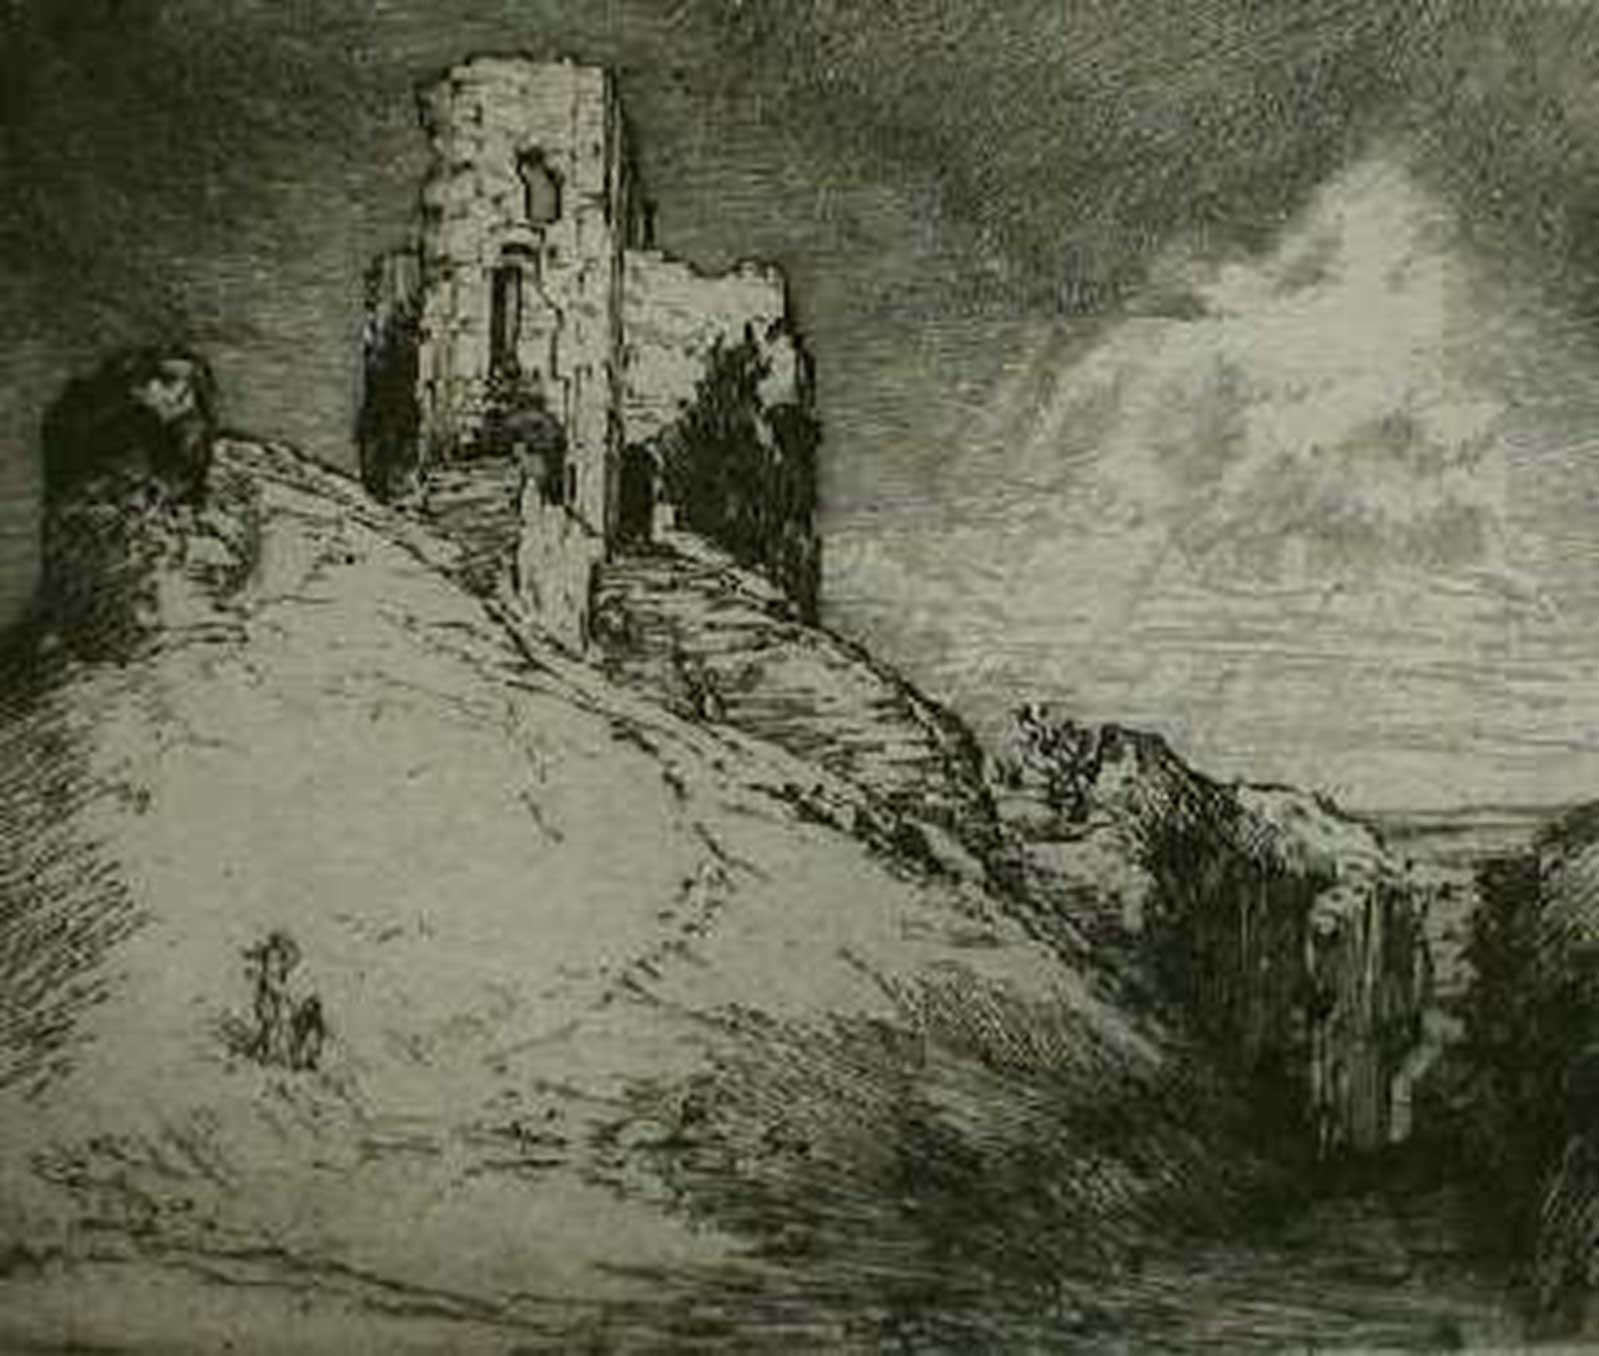 Talusman Fine Art Alfred Bentley, Ruined Castle, Drypoint Etching